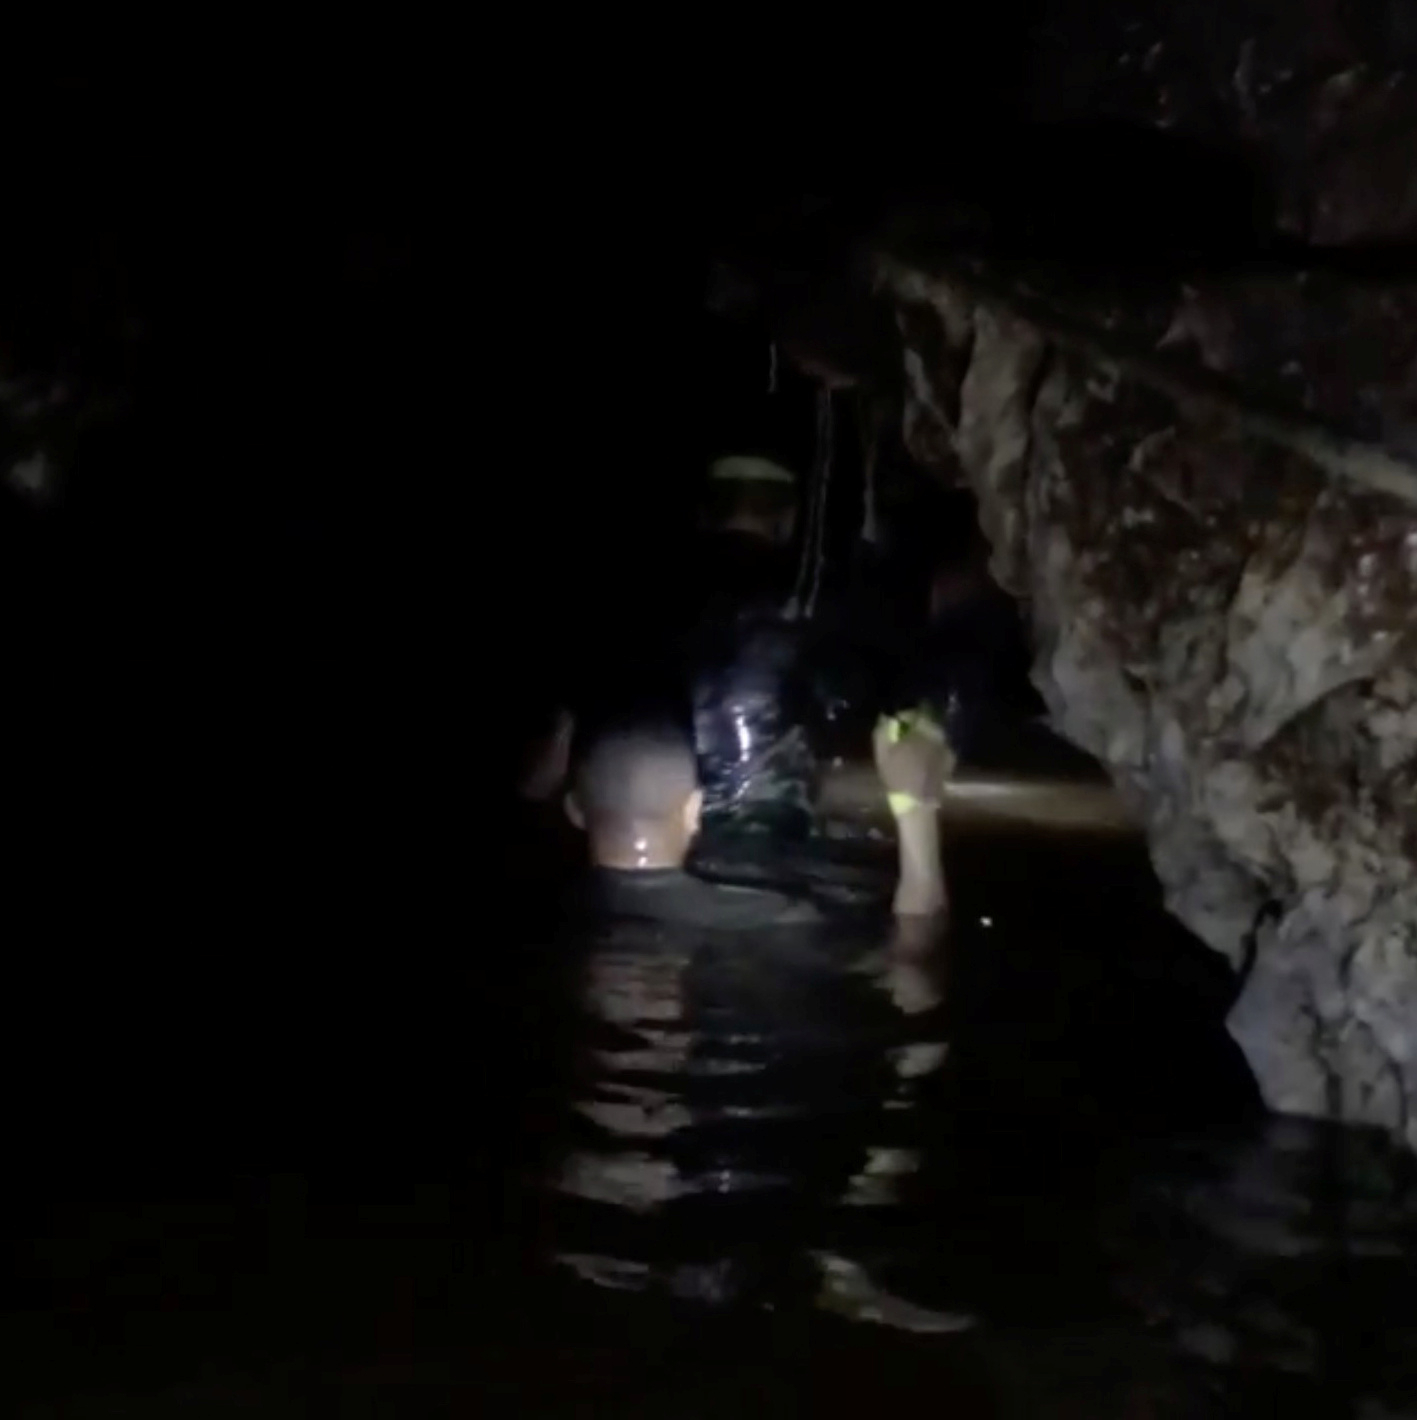 Tham Luang cave